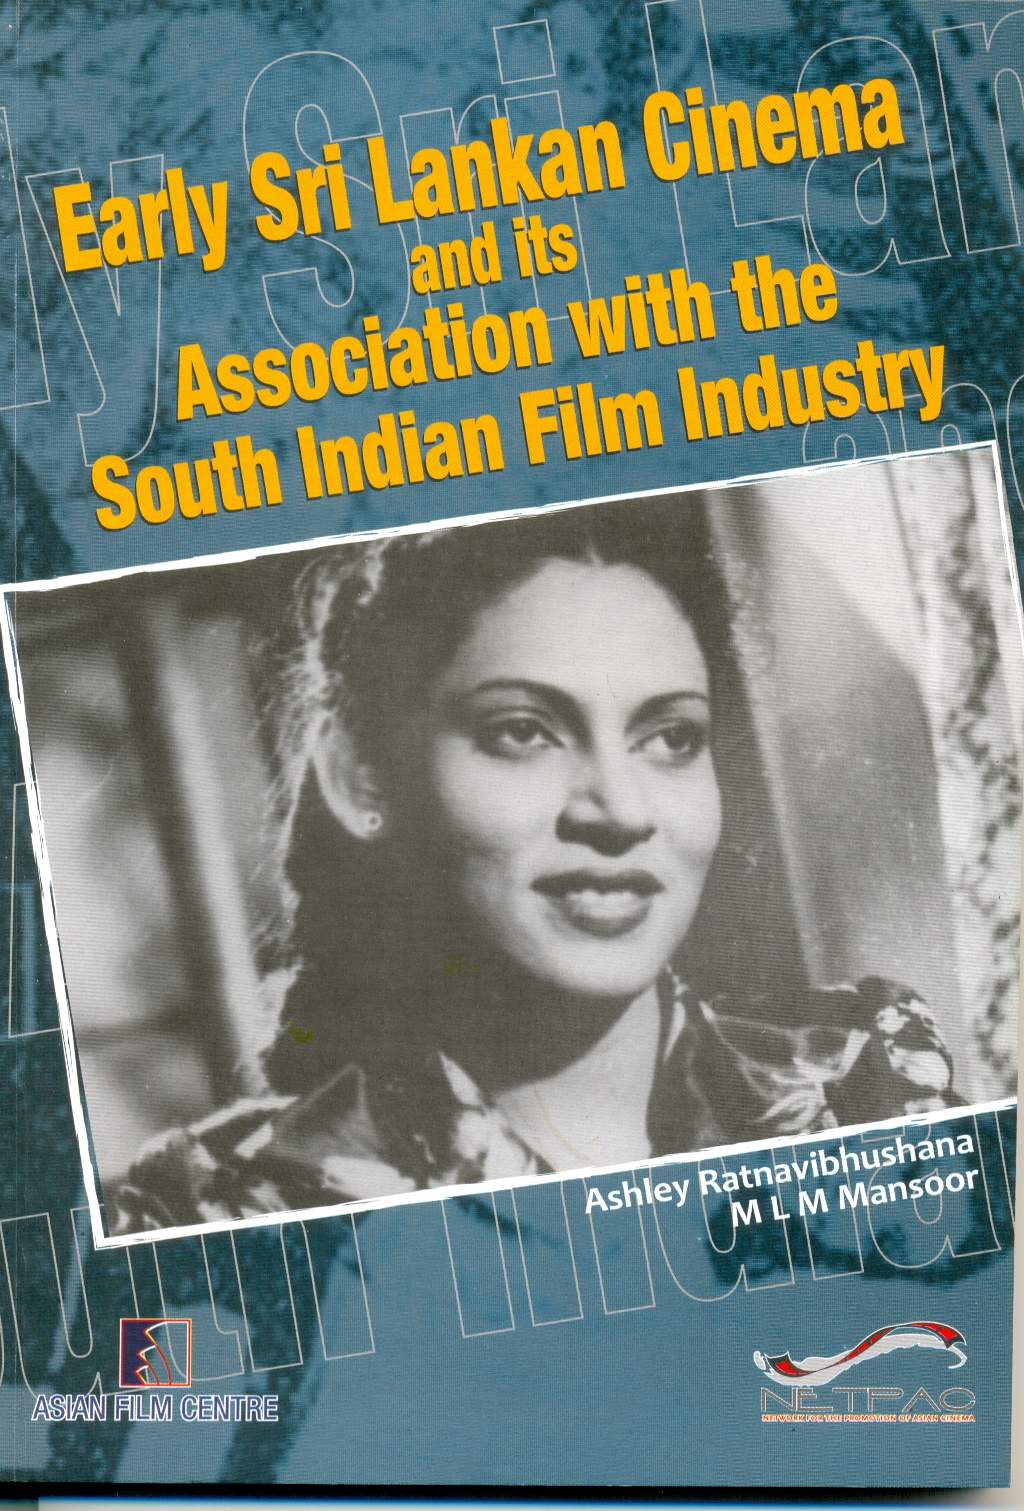 Early Sri Lankan Cinema and its Association with the South Indian Film Industry Image